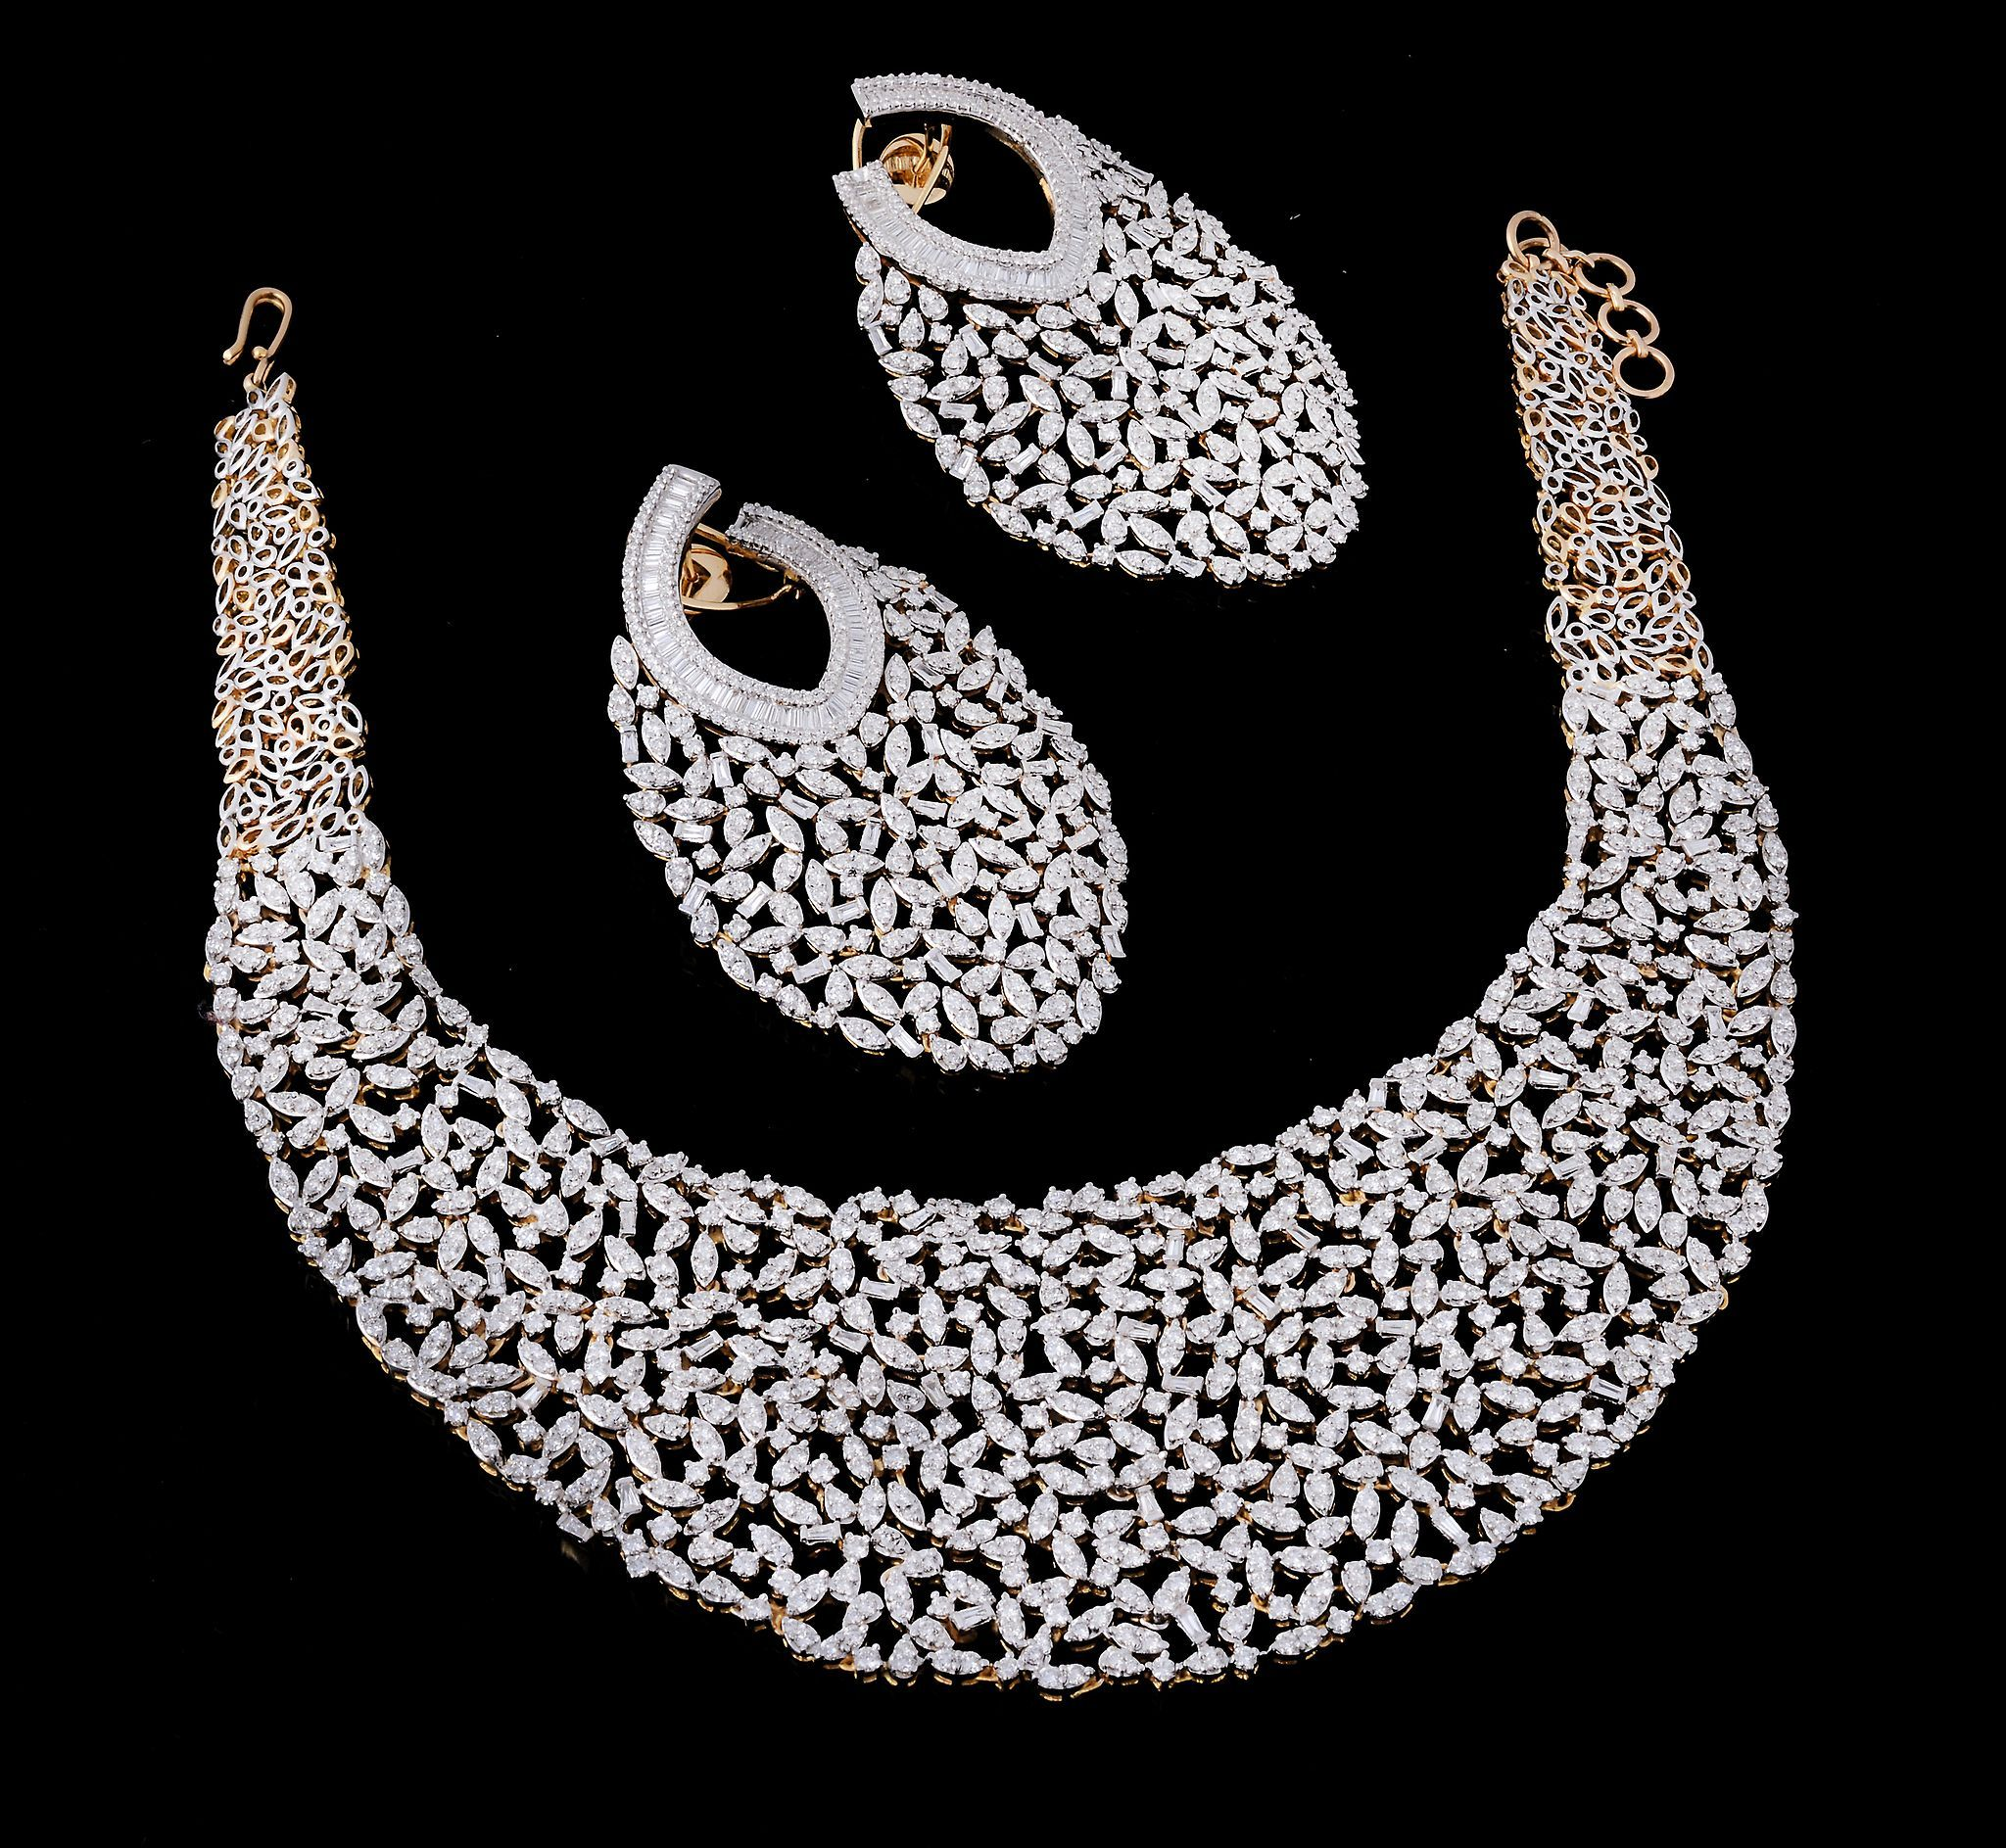 A diamond necklace and ear pendents suite. Sold for £11,160 at Dreweatts & Bloomsbury Auctions' Fine Jewellery sale on 27th November 2014